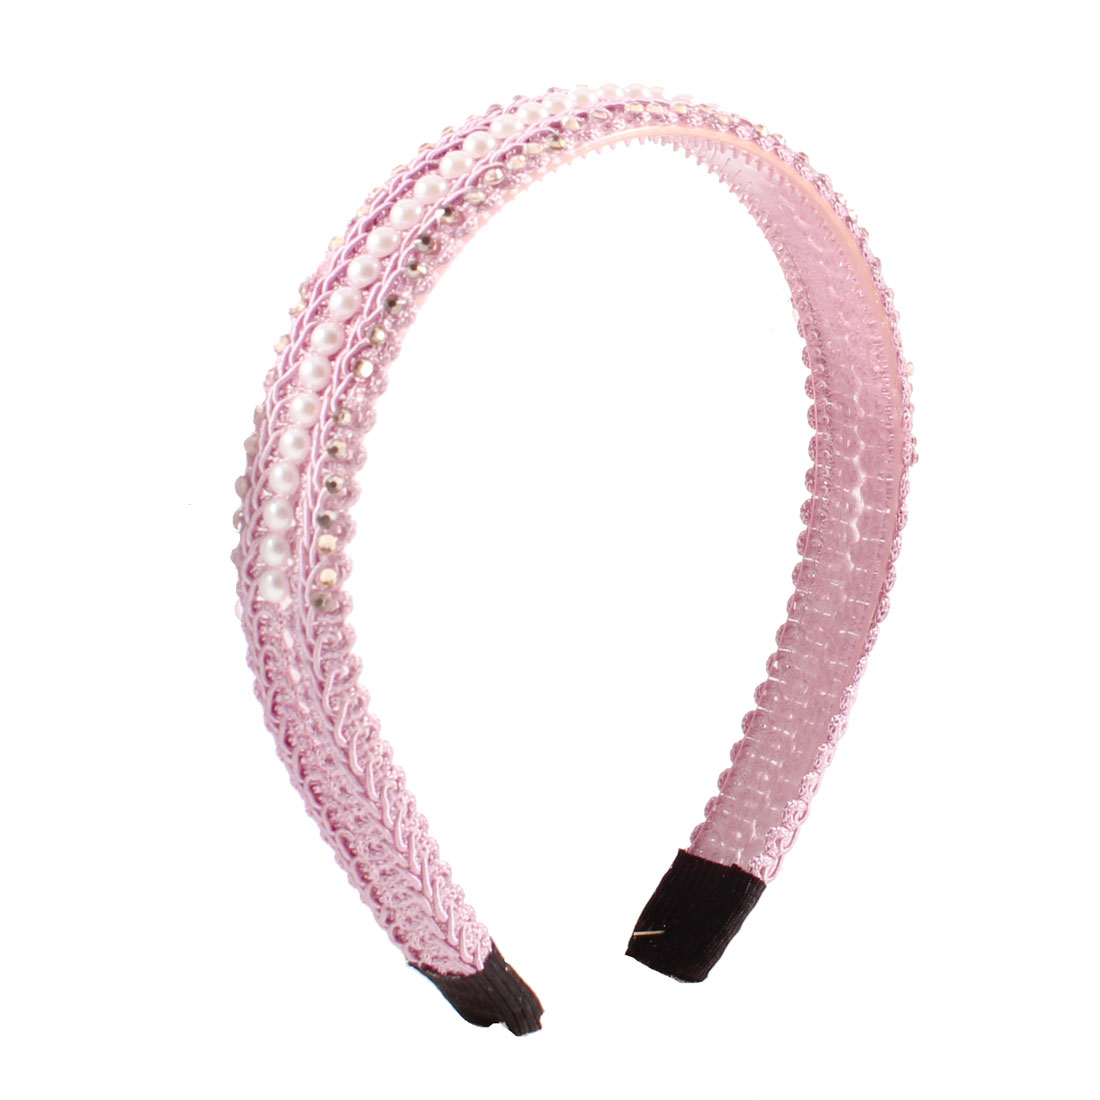 Shiny Rhinestone Imitation Pearl Detailing Hair Hoop Headband Pink for Woman